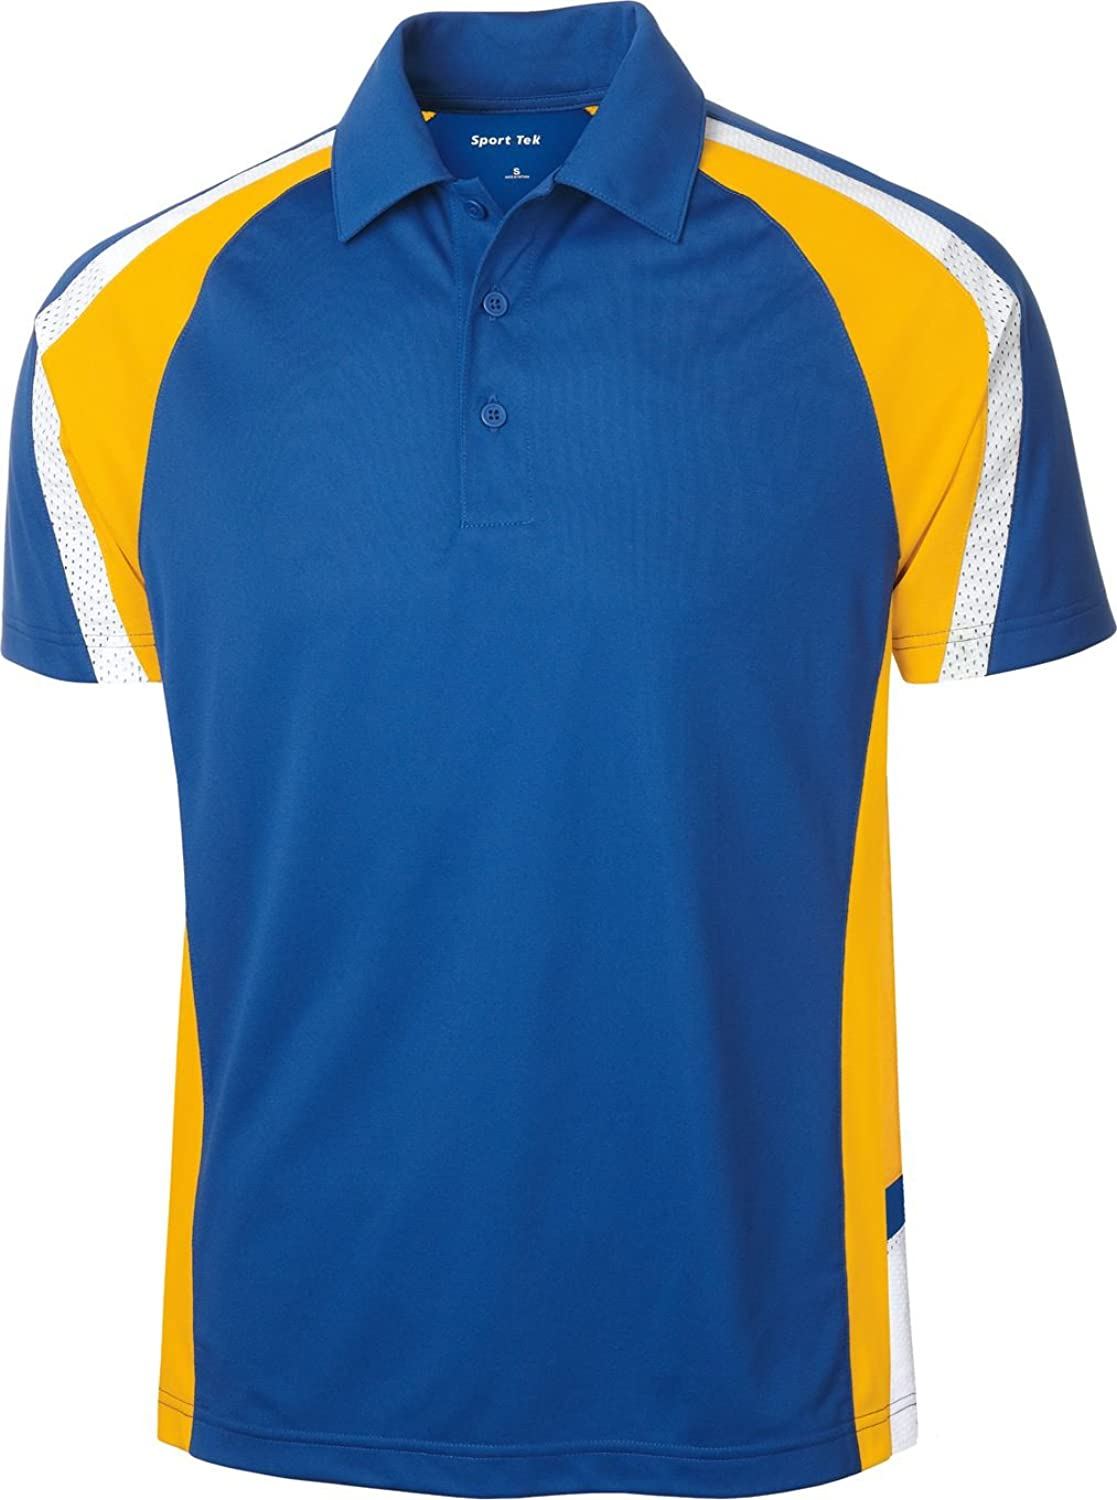 Sport-Tek Tricolor Polo Shirt ST654 L True Royal/Gold/White